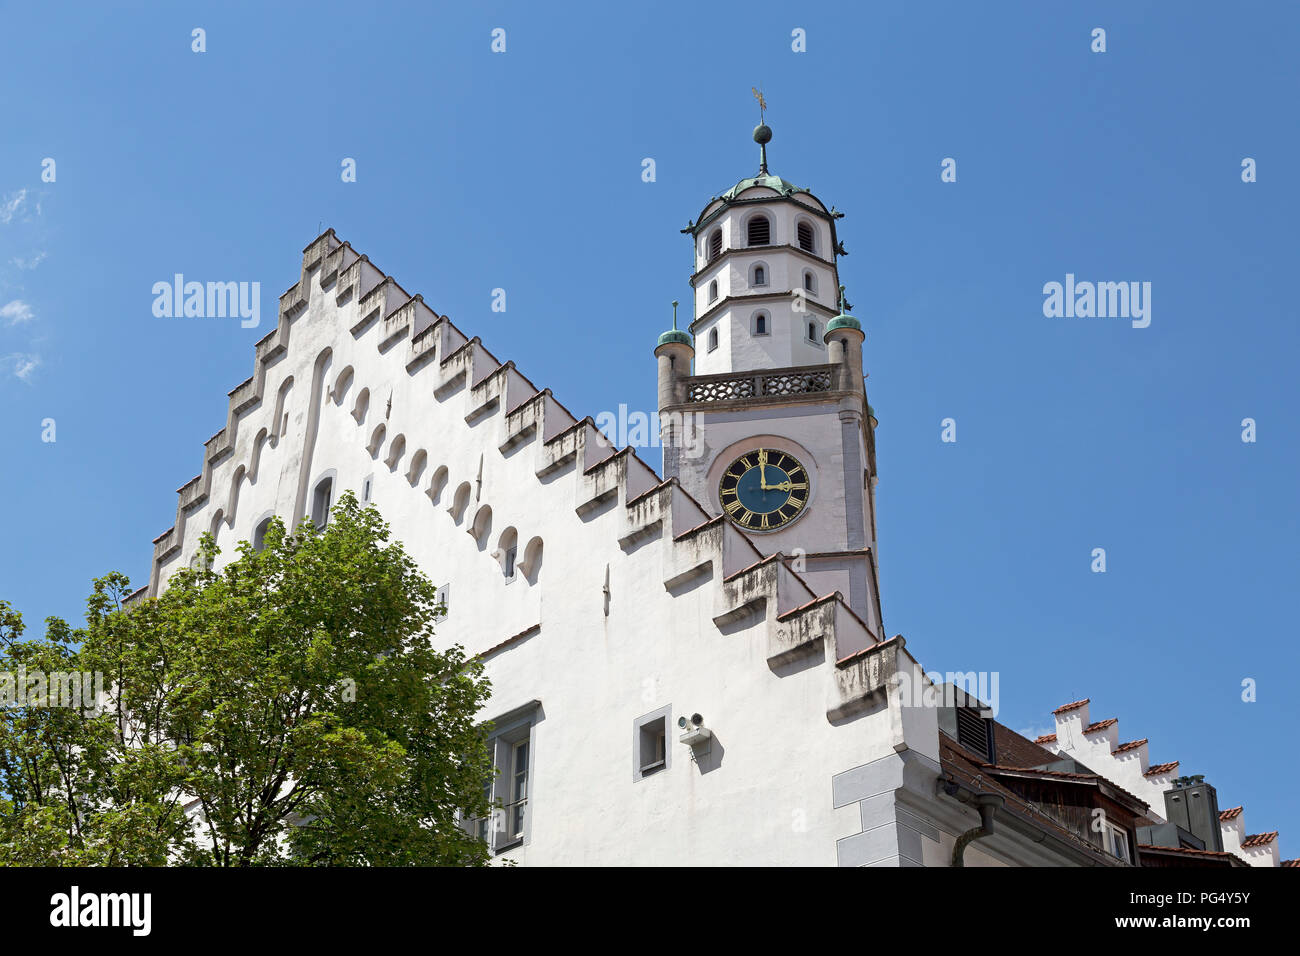 Waaghaus (weighing house) and Blaserturm (trumpeter´s tower), Ravensburg, Baden-Wuerttemberg, Germany - Stock Image